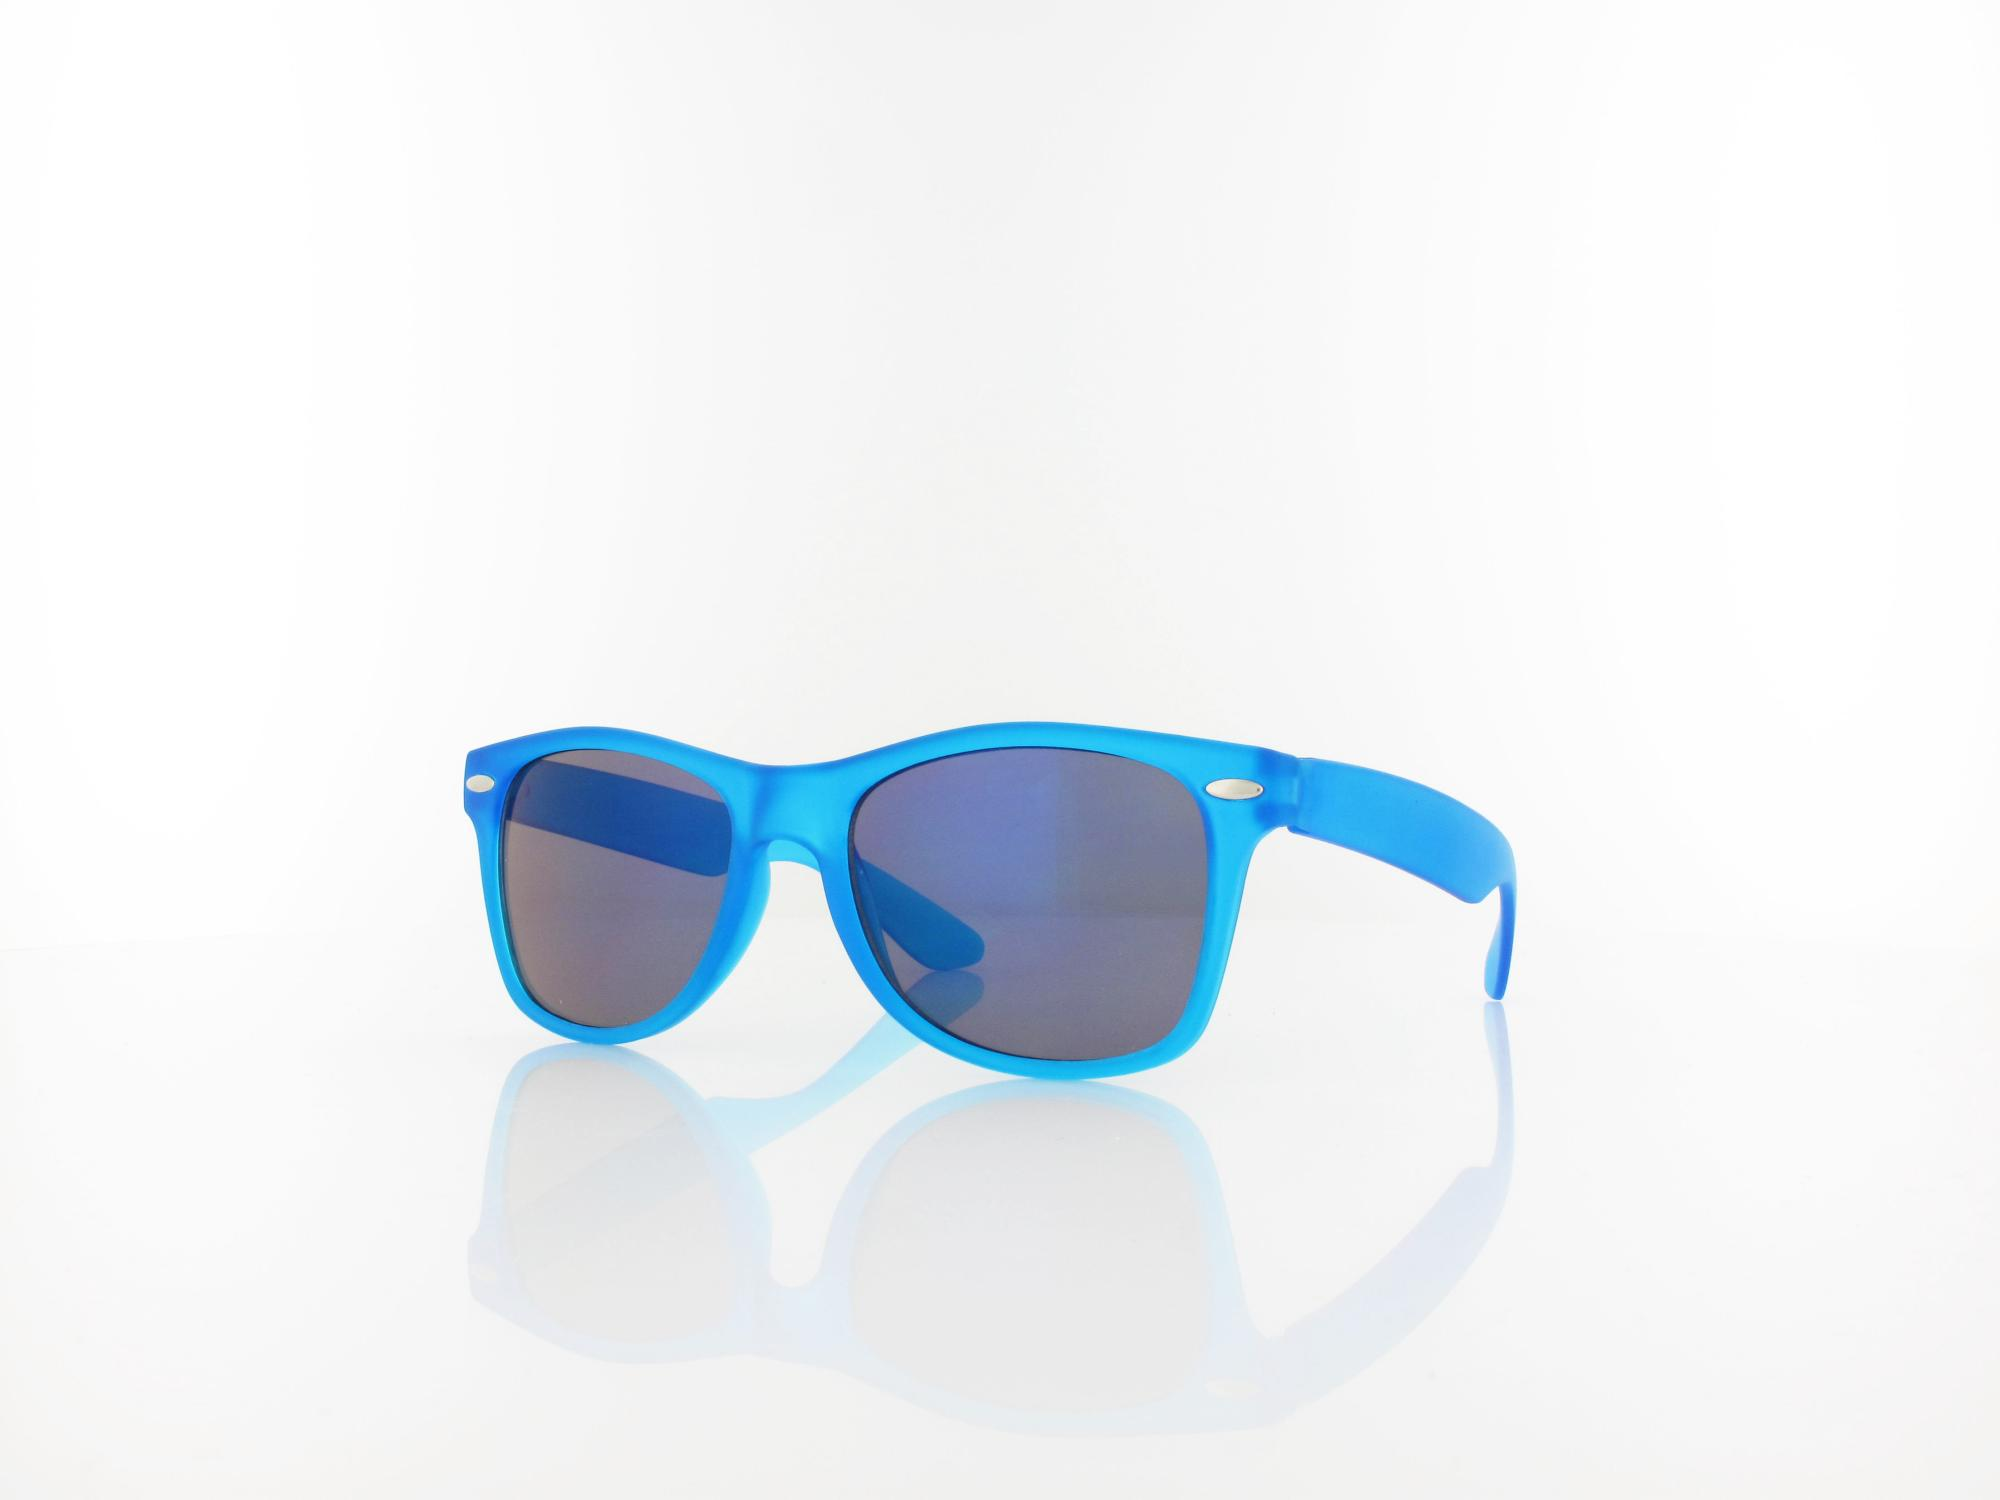 Brilando | 7710-S-34 small 46 | crystal light blue / blue mirror